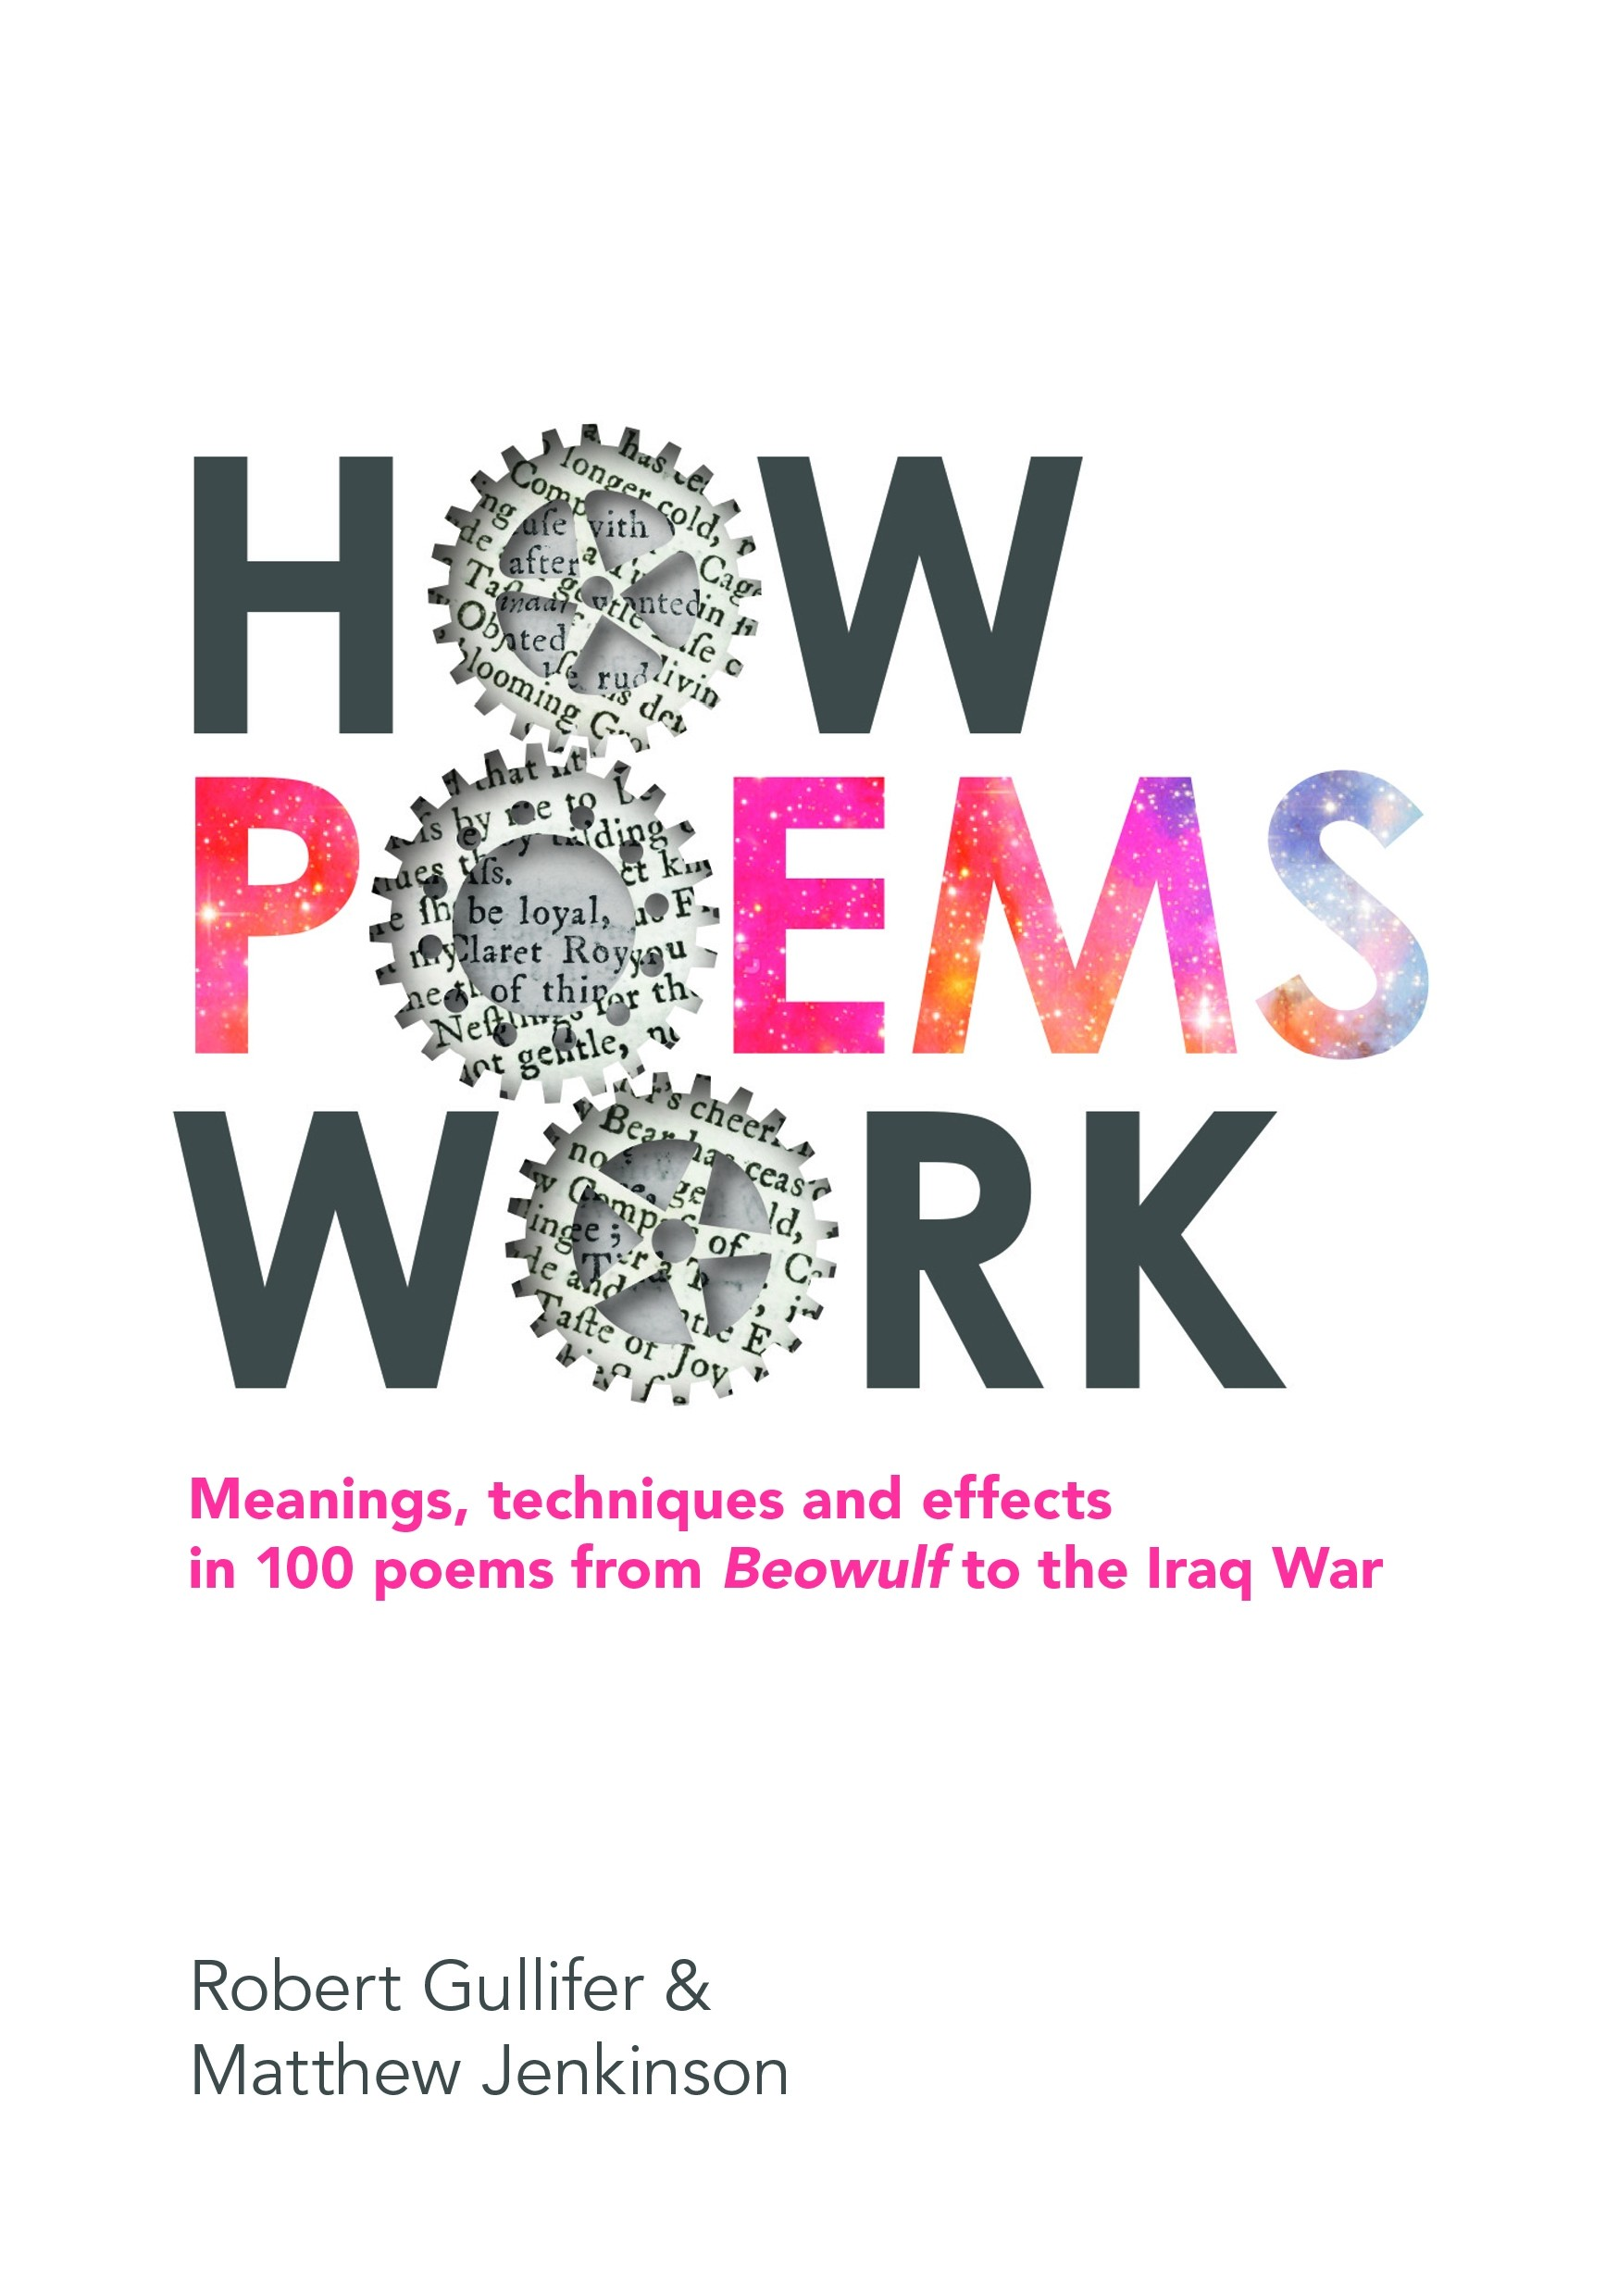 How Poems Work: Meanings, techniques and effects in 100 poems from